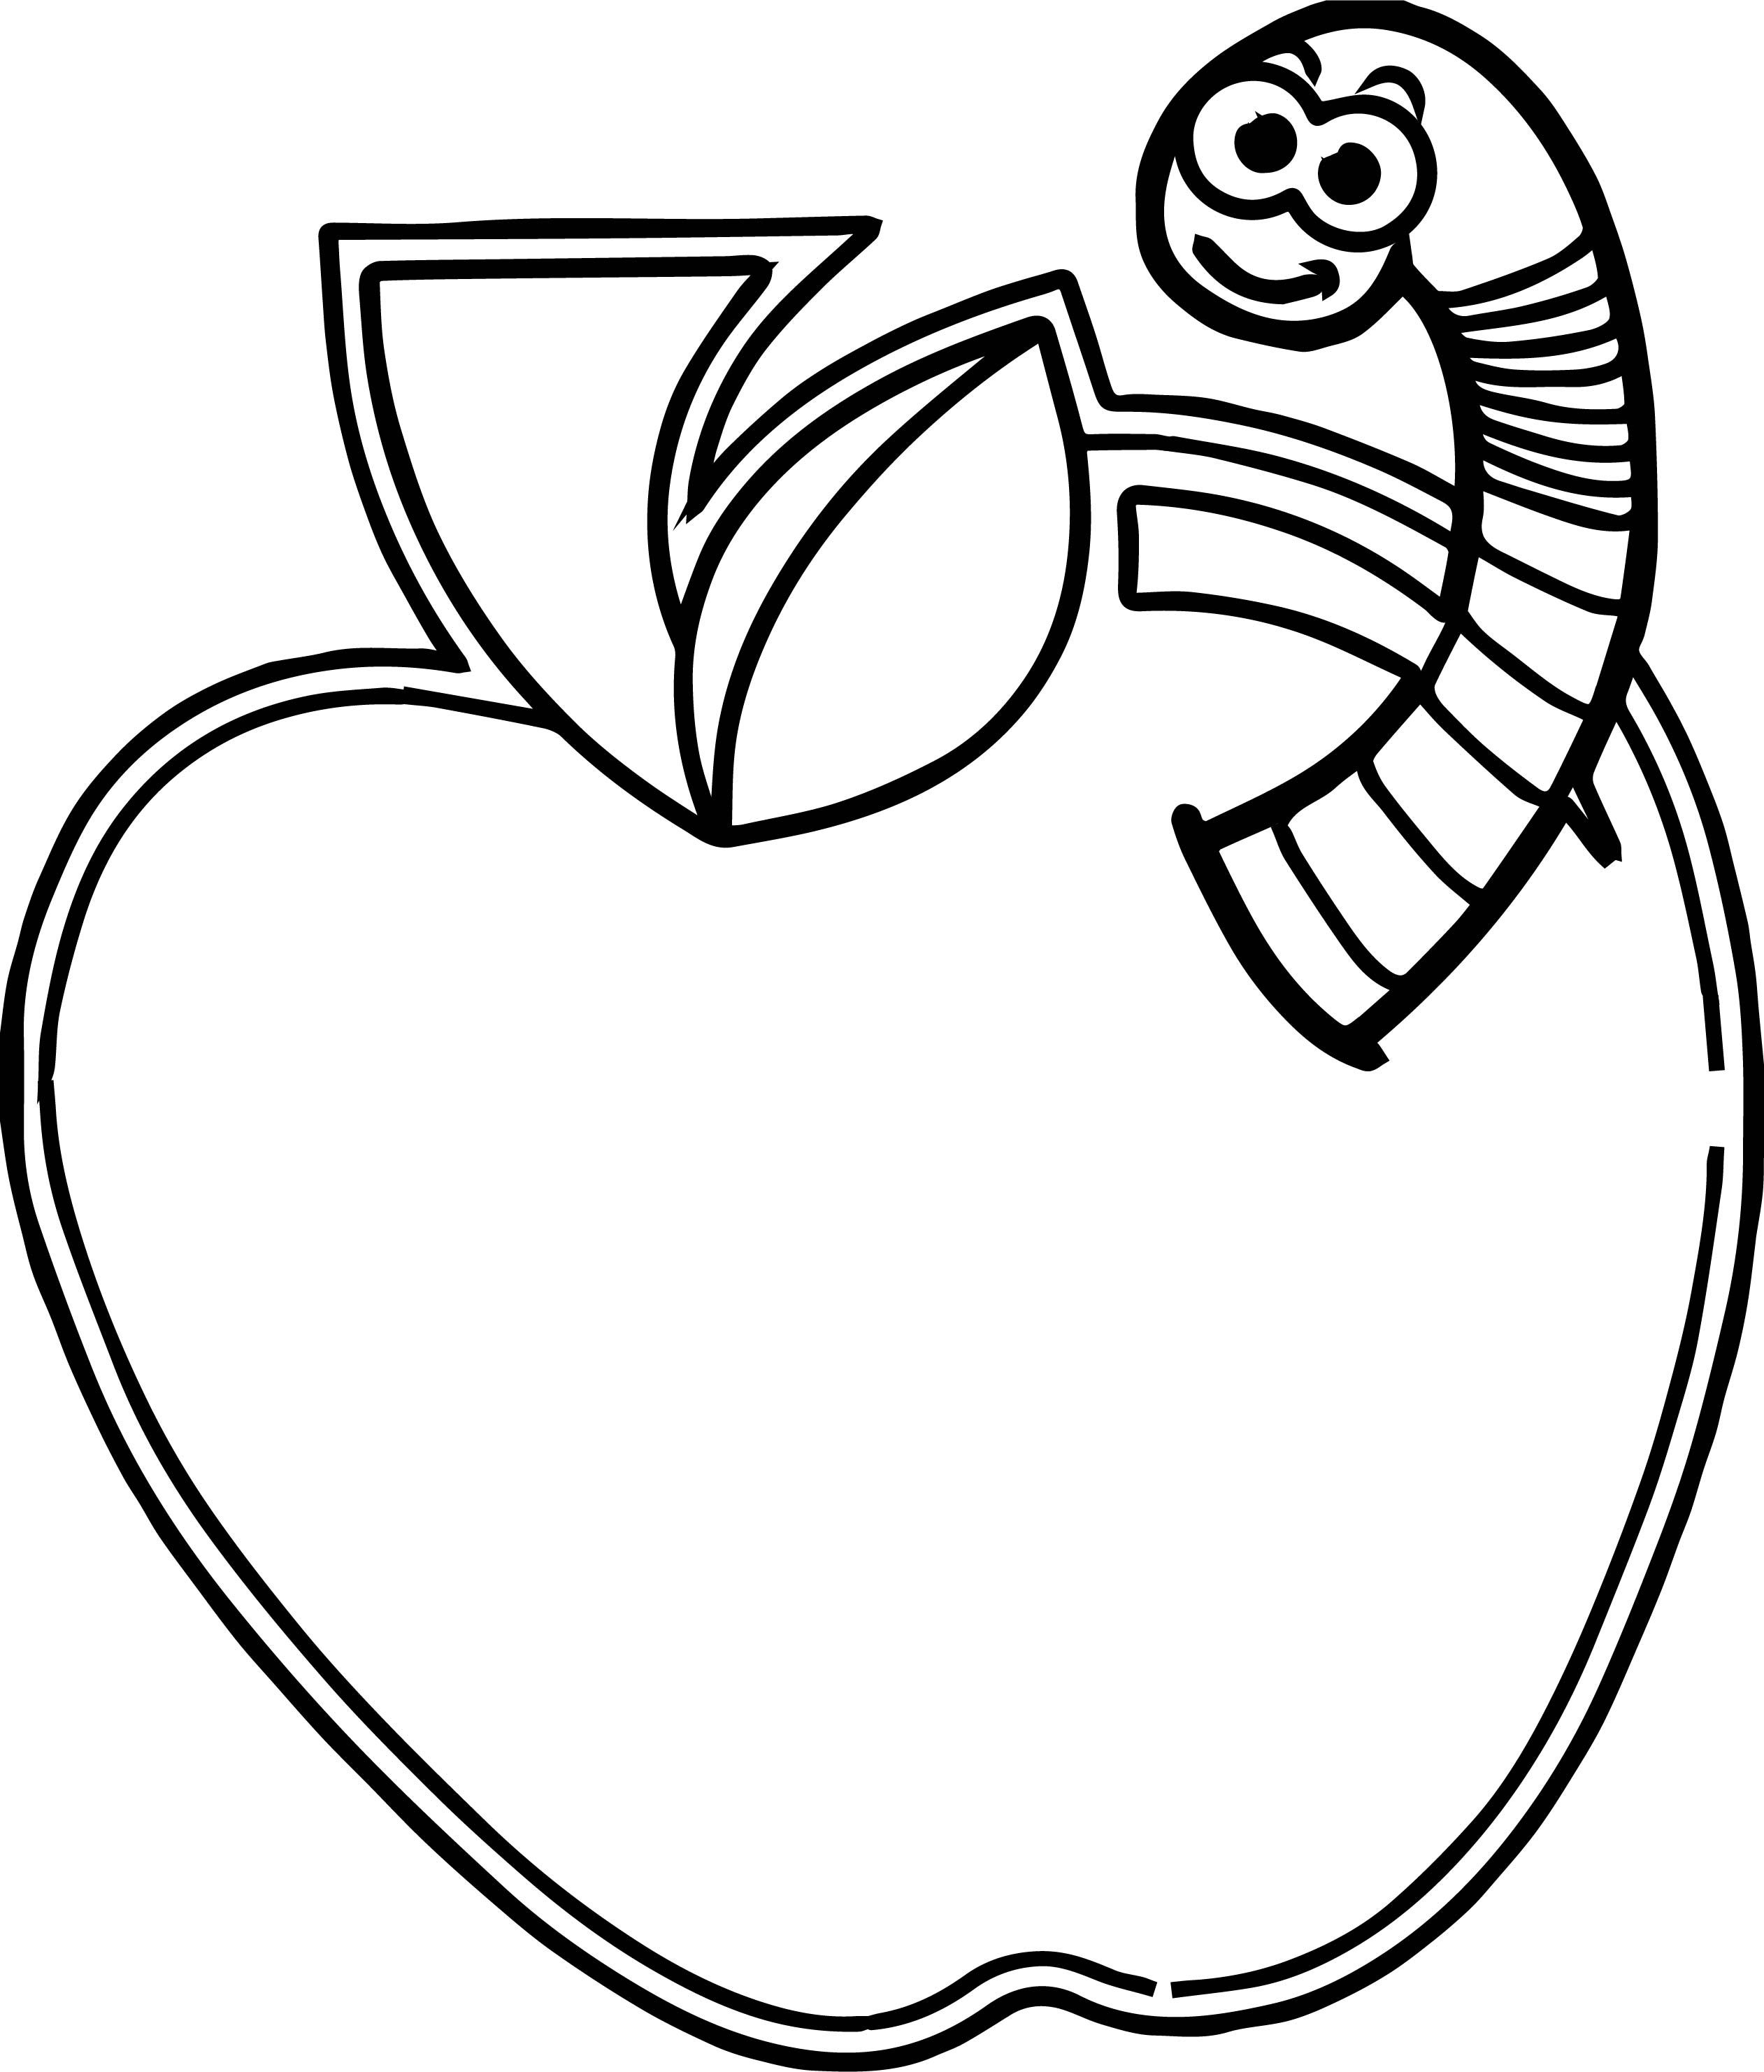 coloring candy apples picture of apple coloring page apples coloring candy